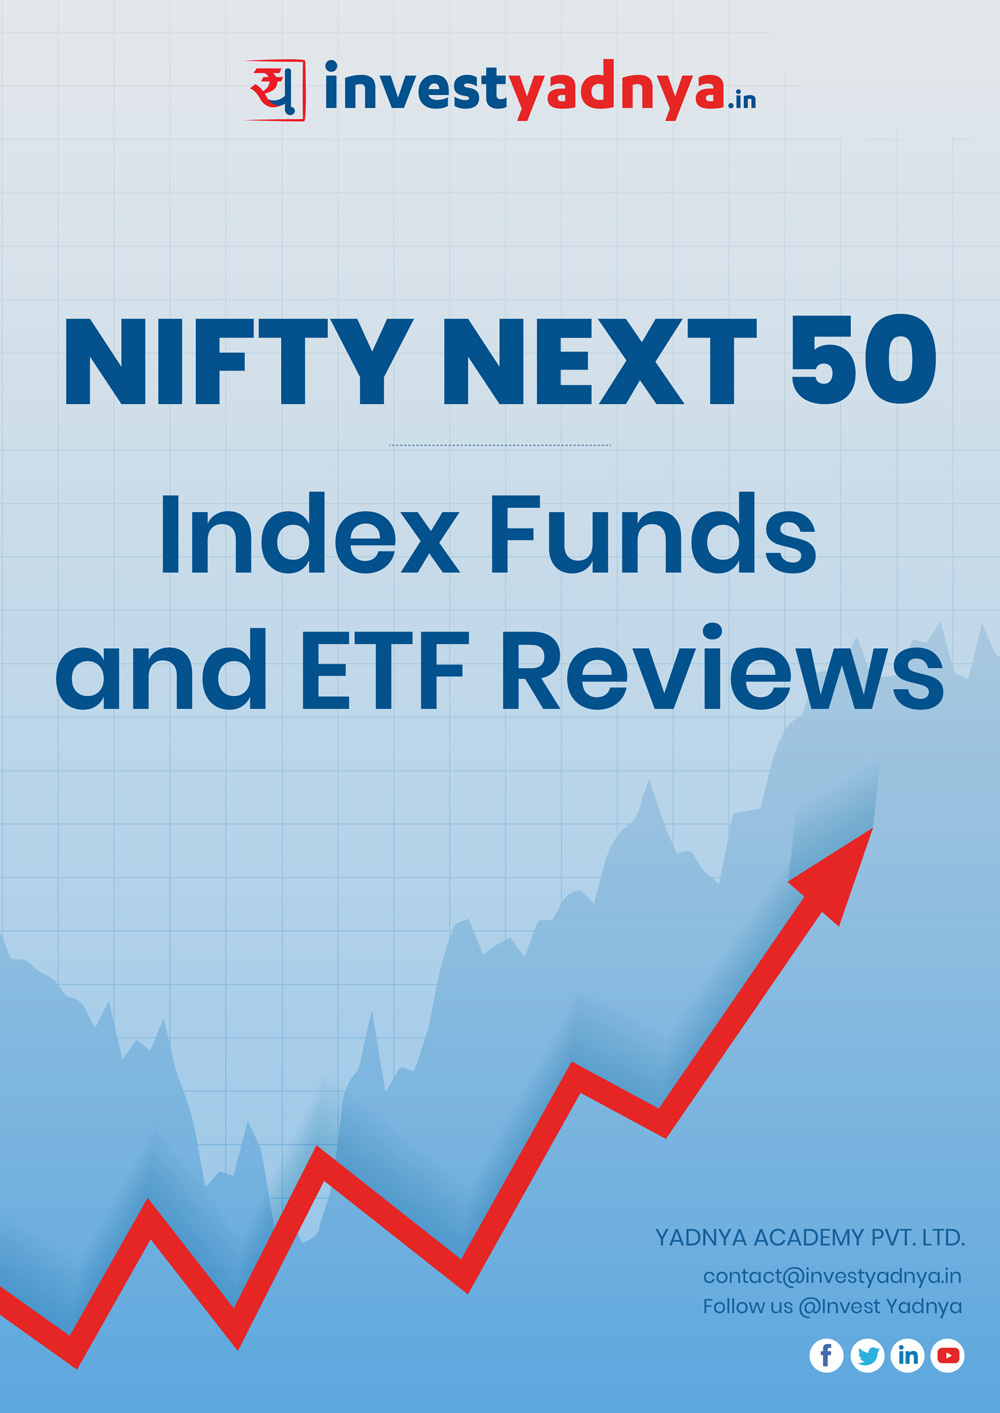 Index/ETF Category  -  Nifty Next 50 Detailed Analysis & Review based on Mar 31st, 2019 data. Most Comprehensive, unique and detailed ETF/Index reviews based on Yadnya's proprietary methodology of Green, Yellow & Red Star.